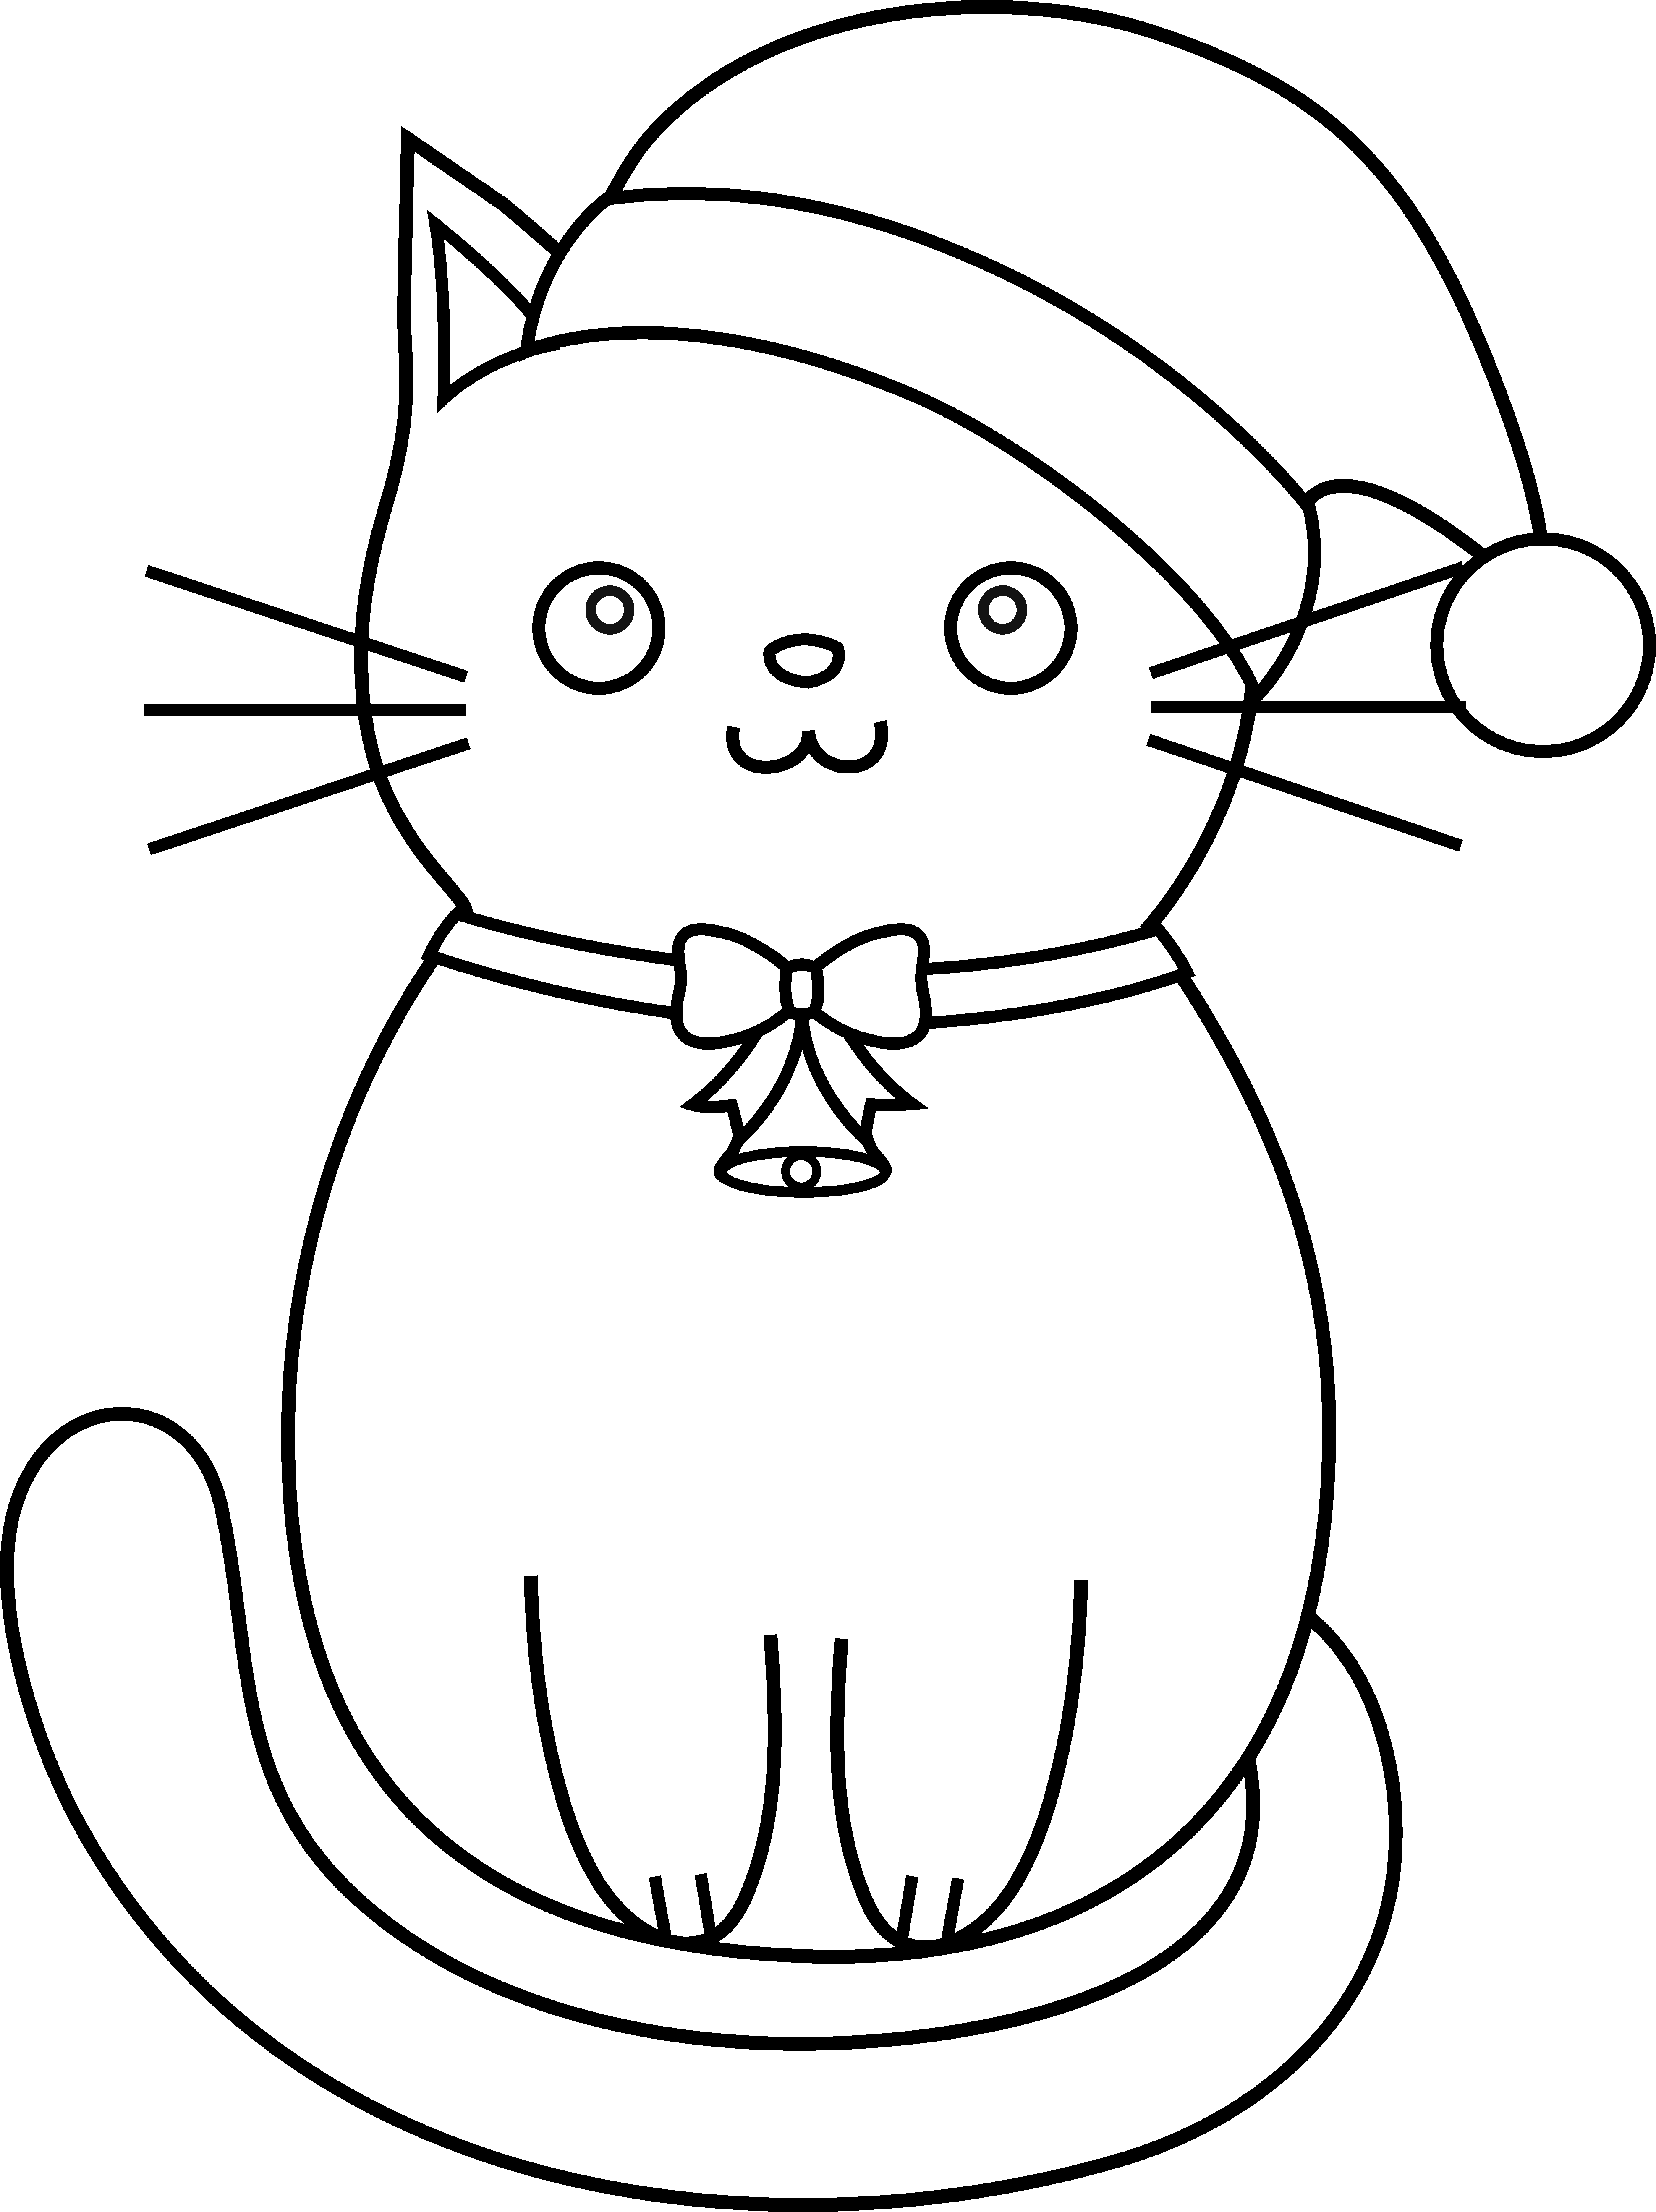 cat coloring picture free printable cat coloring pages for kids picture coloring cat